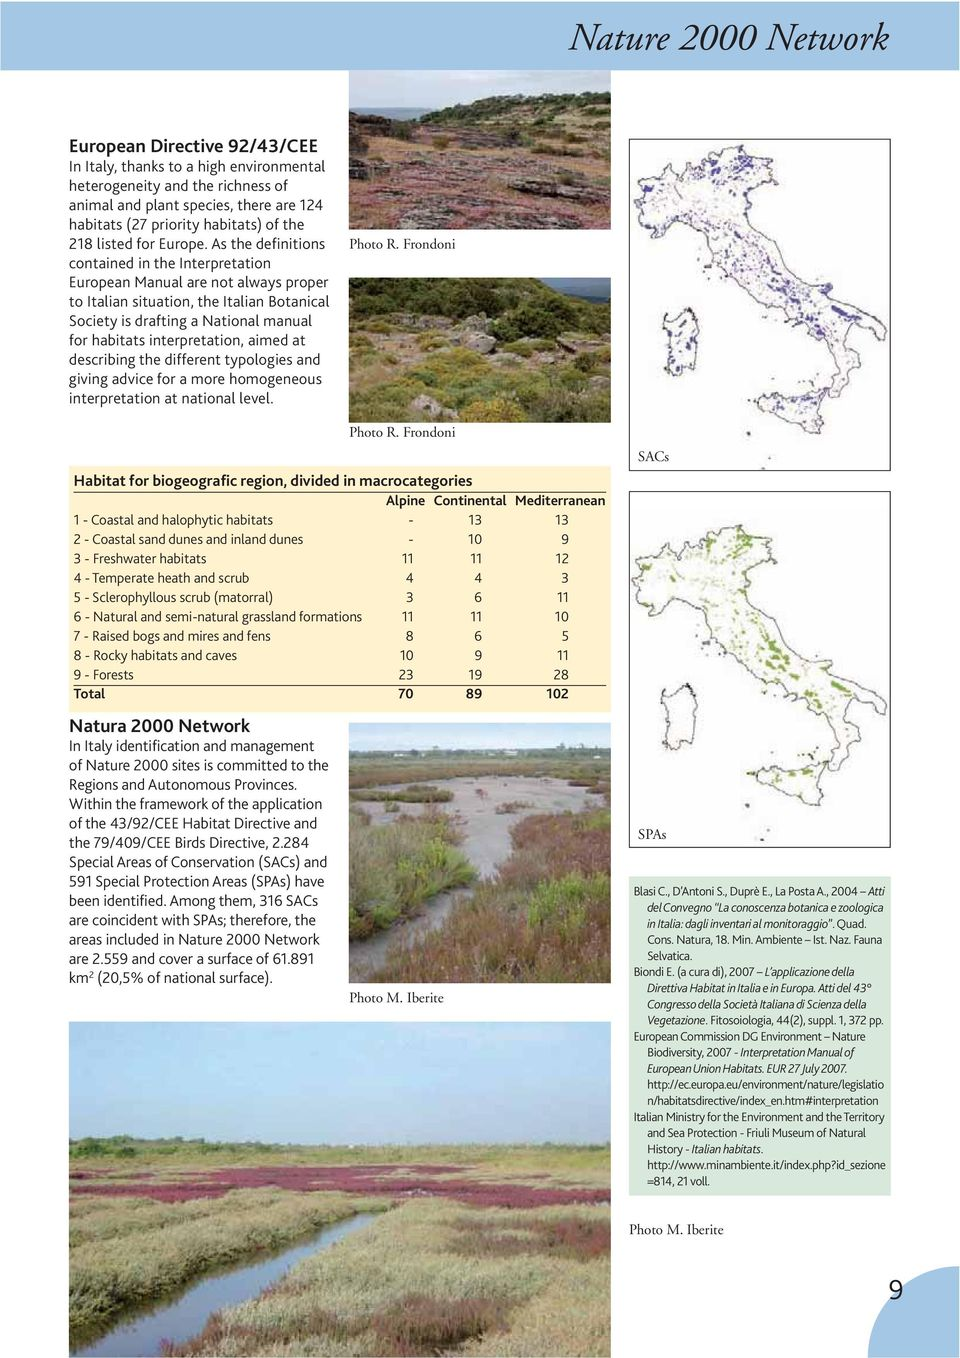 As the definitions contained in the Interpretation European Manual are not always proper to Italian situation, the Italian Botanical Society is drafting a National manual for habitats interpretation,